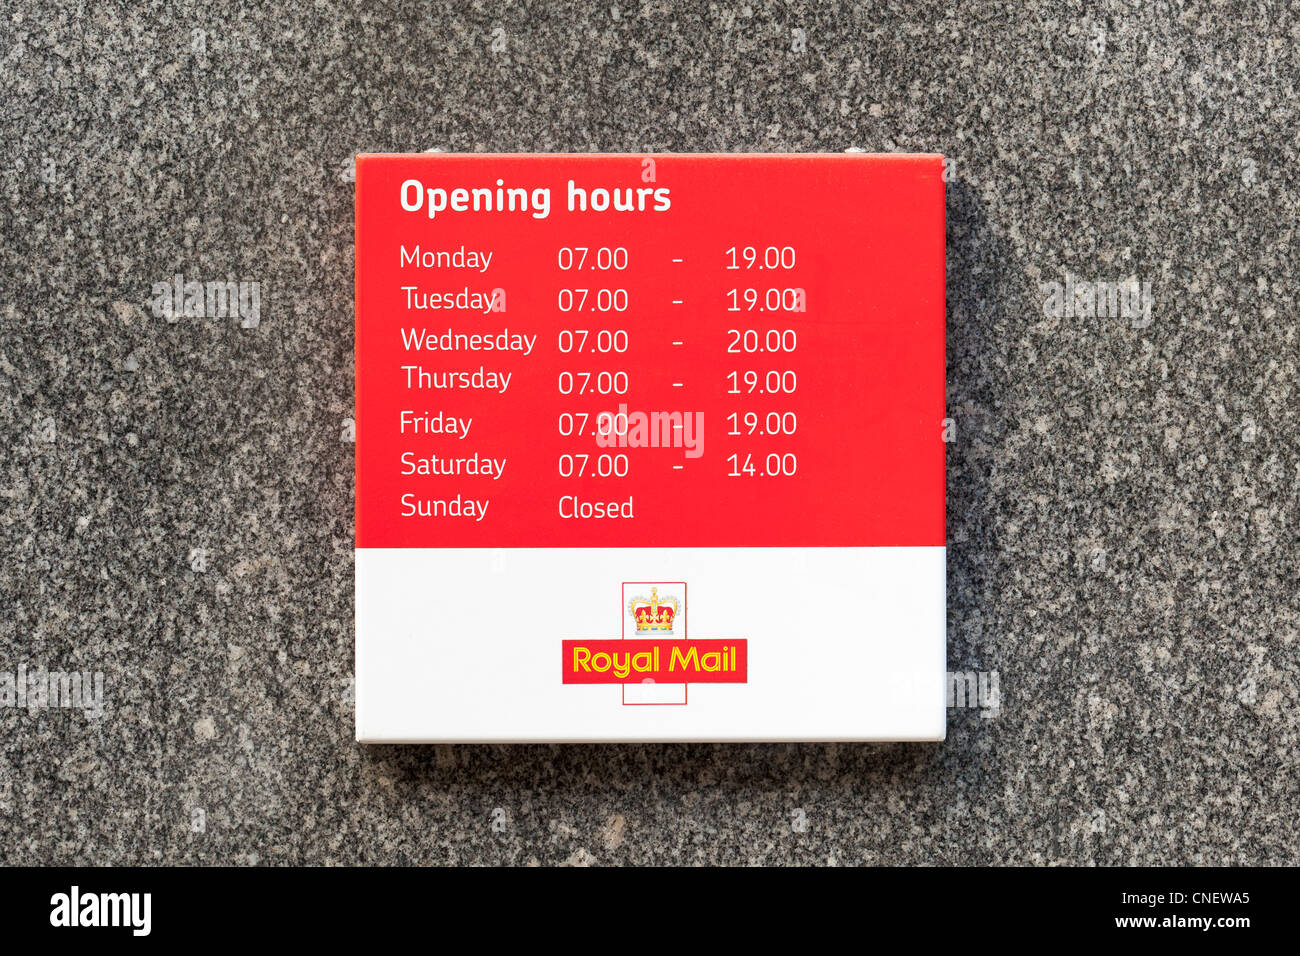 Post office opening times sign, UK Stock Photo, Royalty Free Image ...